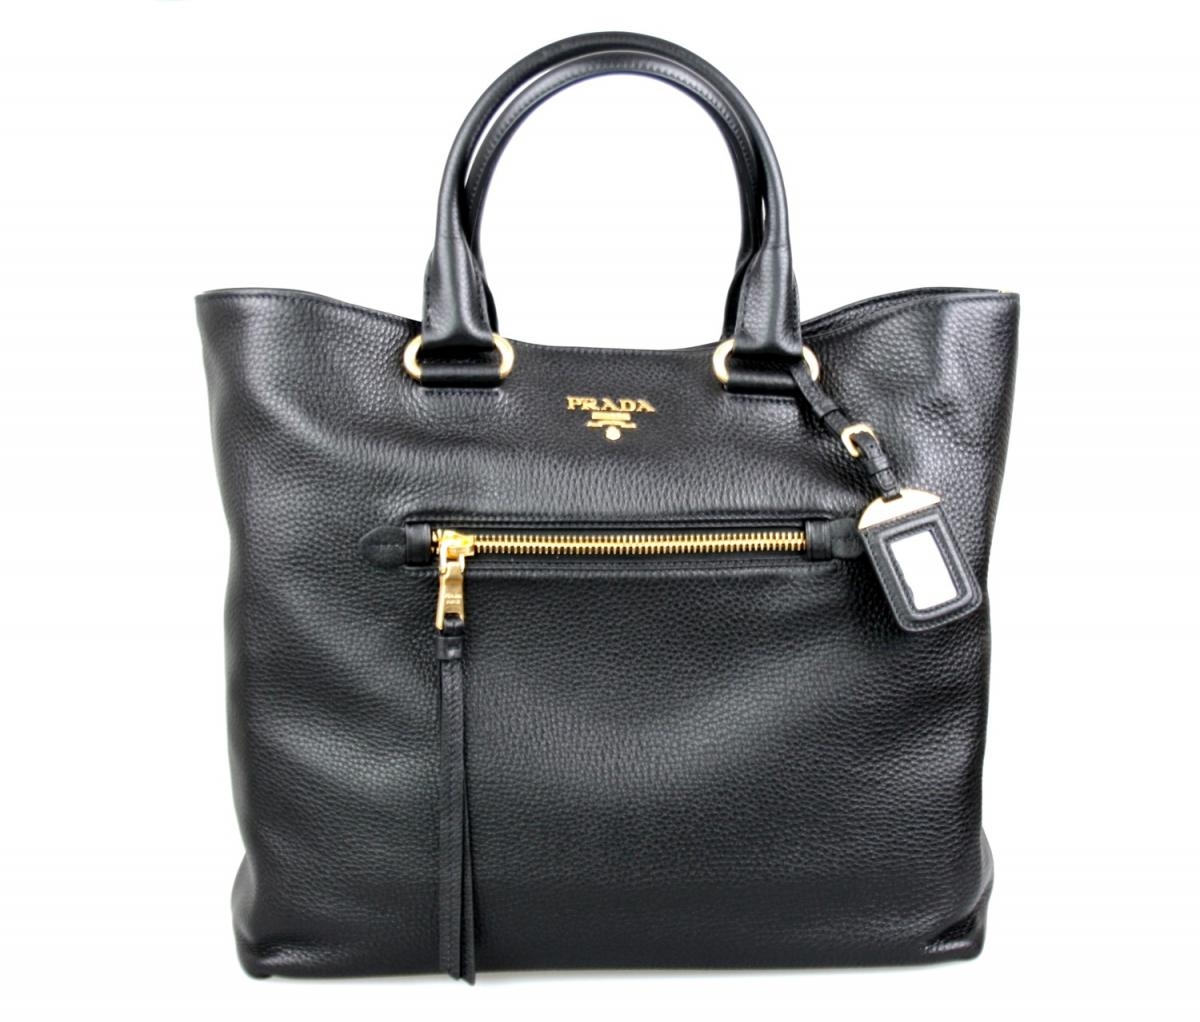 luxury prada bag shopper handbag bn2754 black new new ebay. Black Bedroom Furniture Sets. Home Design Ideas